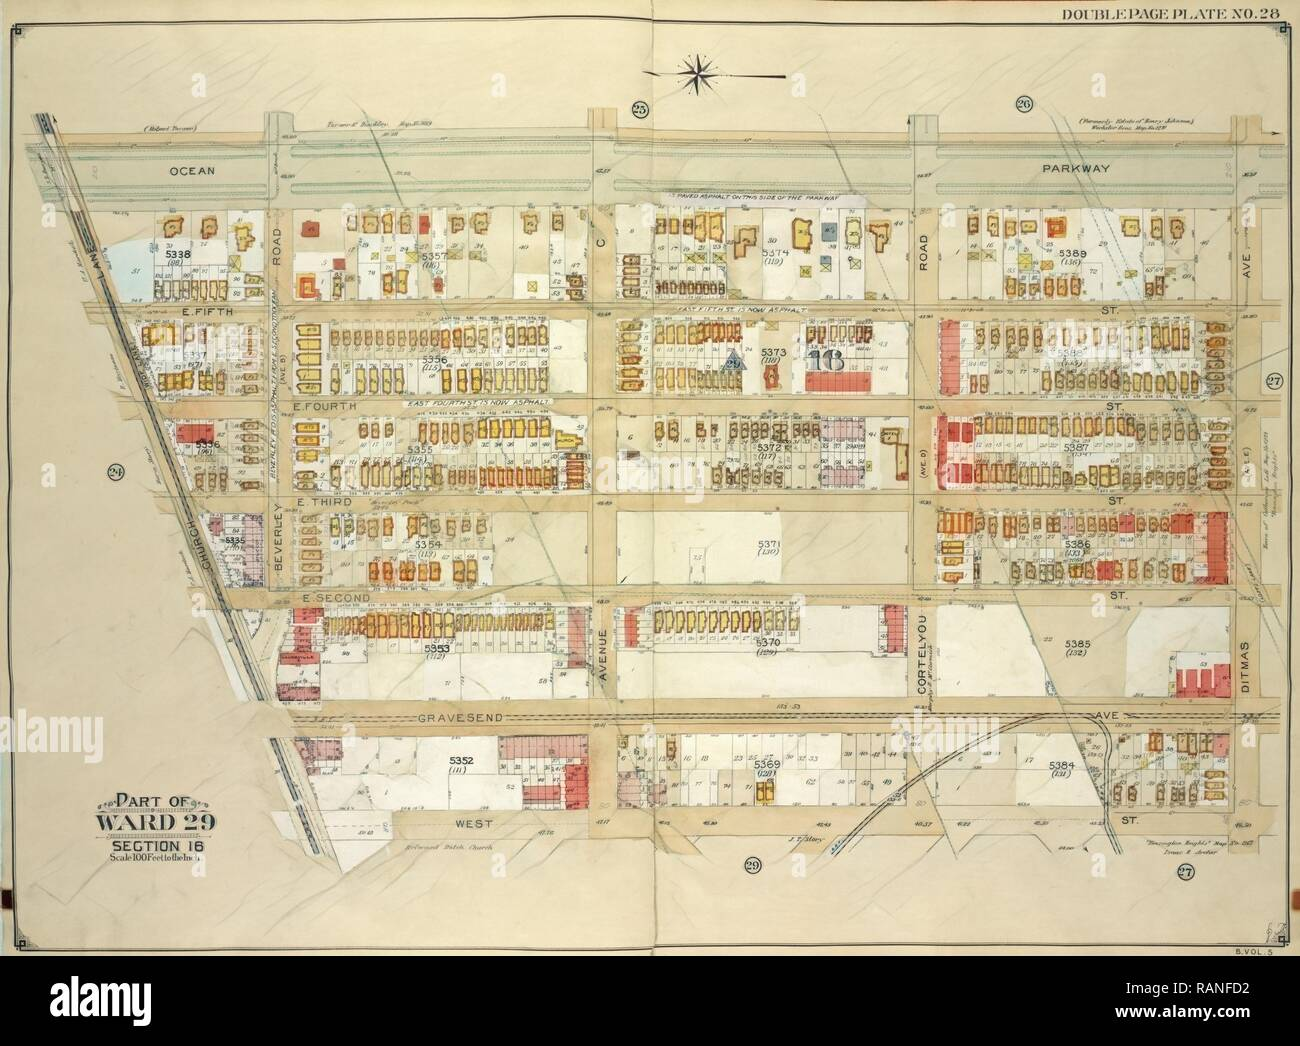 Brooklyn, Vol. 5, Double Page Plate No. 28, Part of Ward 29, Section 16, Map bounded byOcean Parkway, Ditmas Ave reimagined Stock Photo